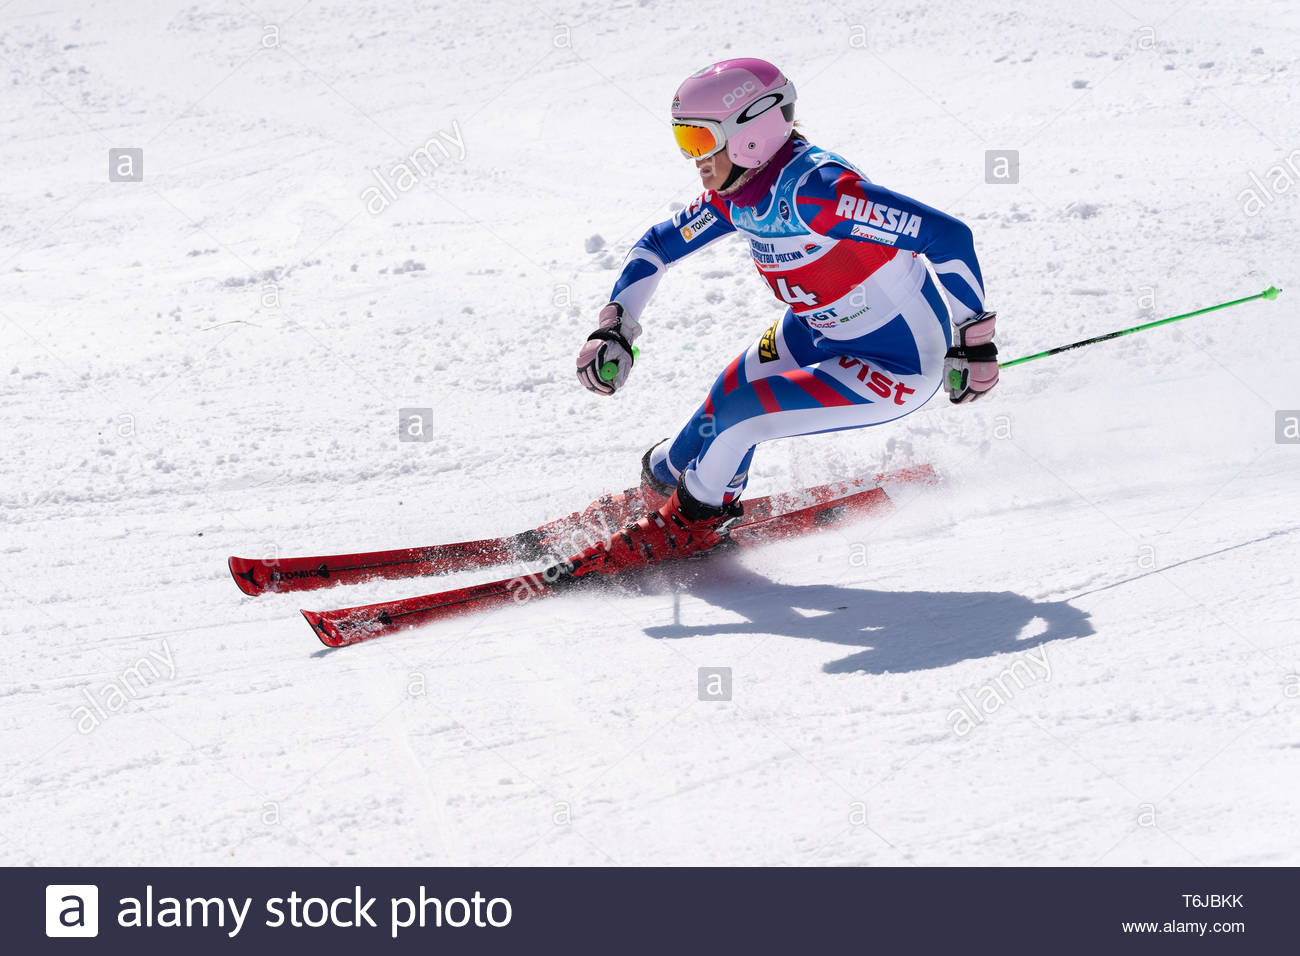 KAMCHATKA PENINSULA, RUSSIAN FEDERATION - APRIL 1, 2019: Mountain skier Vitalina Girina (Moscow Region) skiing down snowy mountain slope. Russian Wome - Stock Image